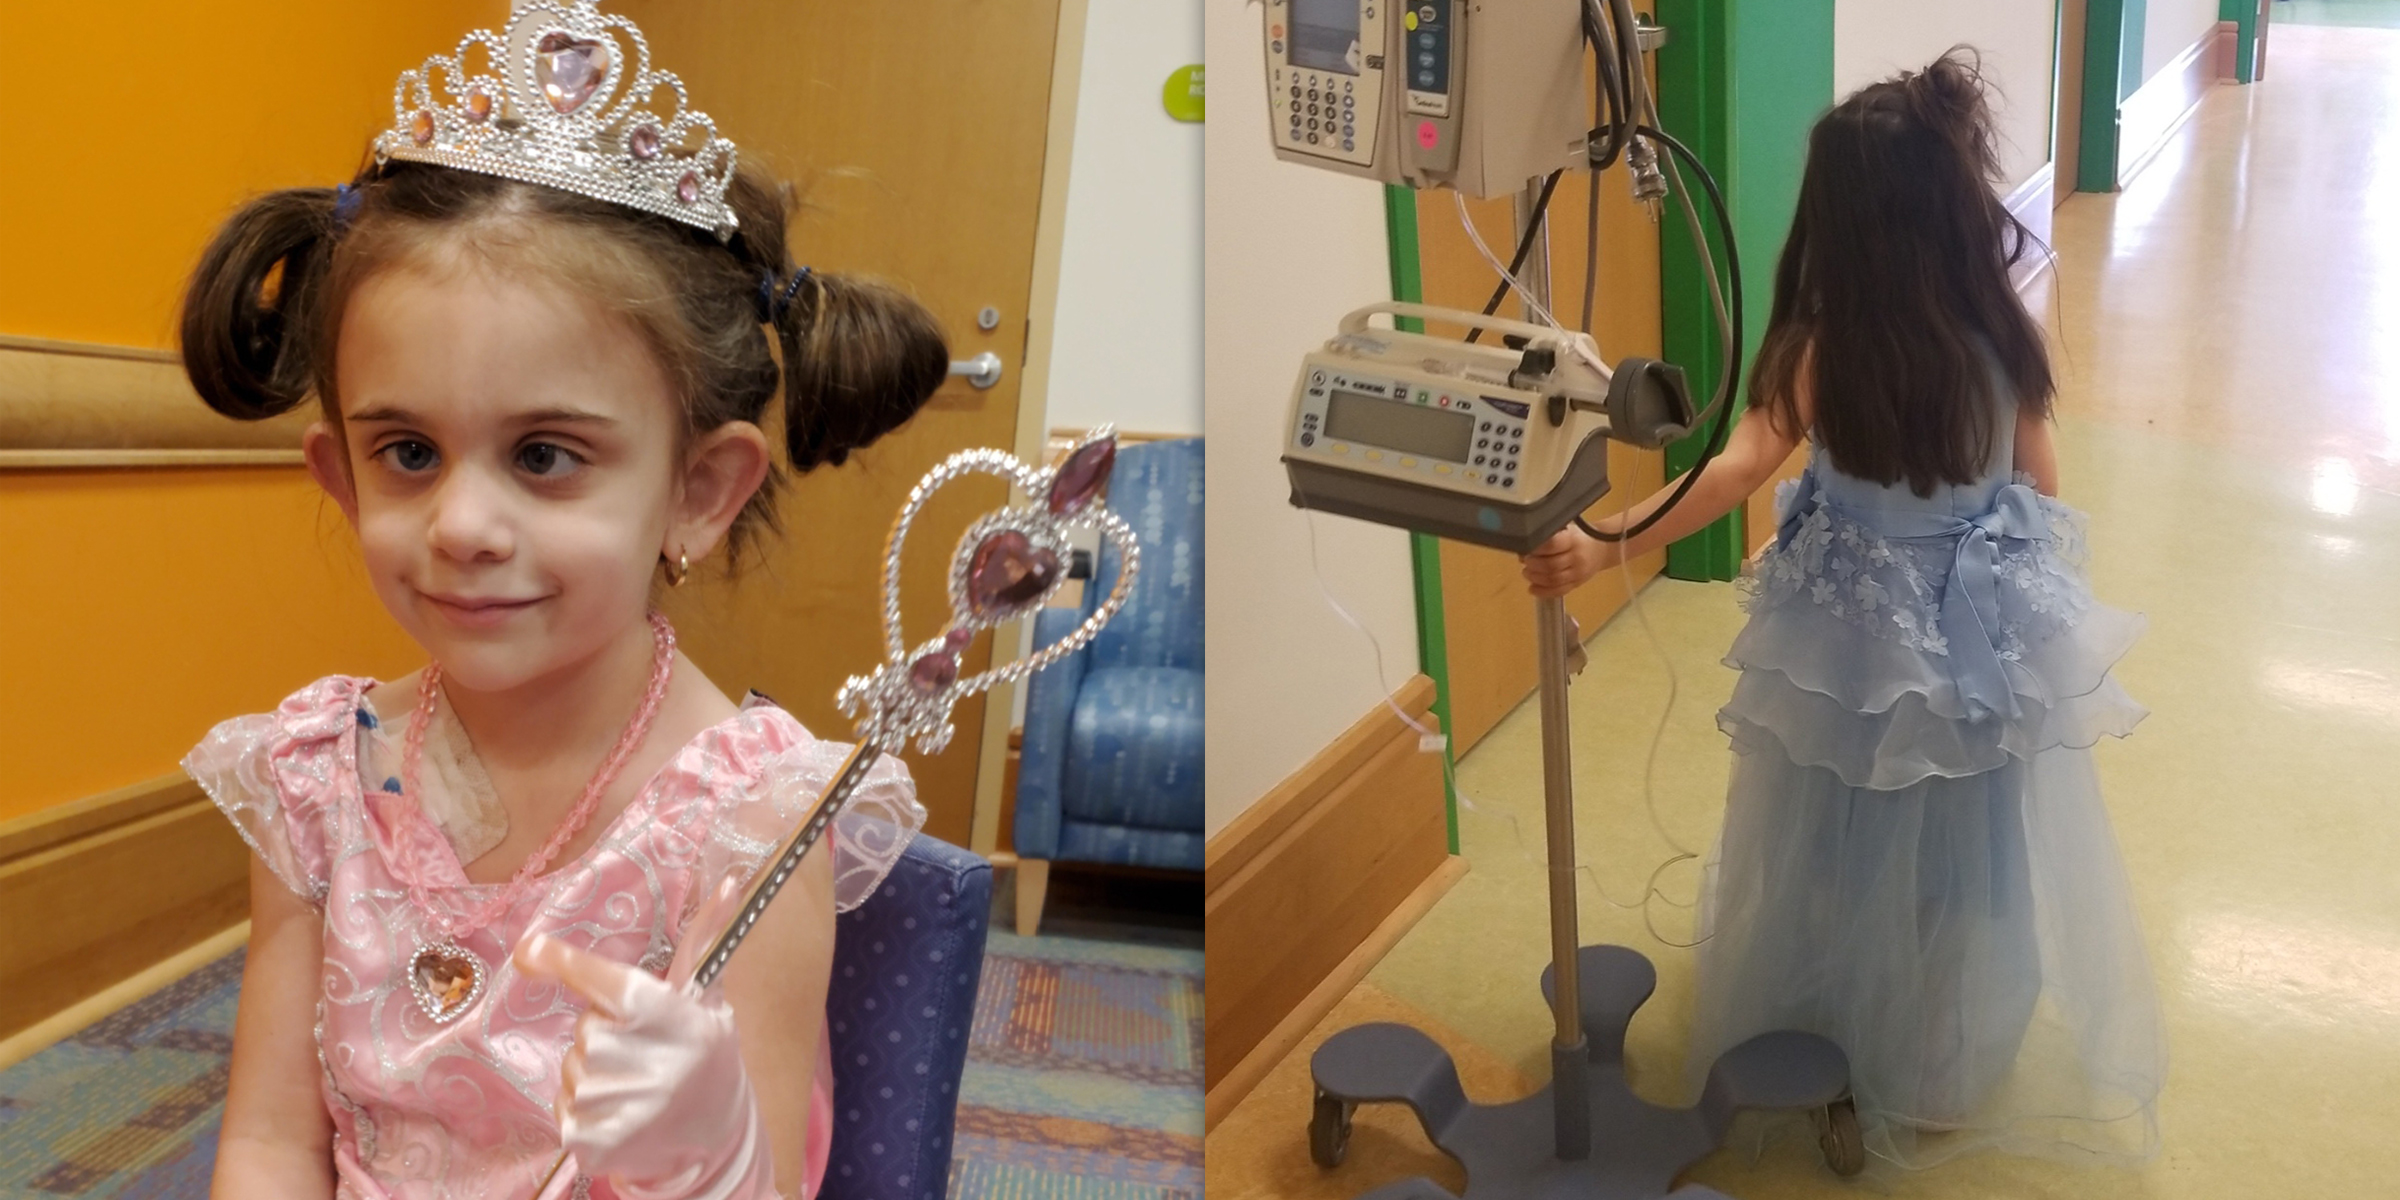 5-year-old girl wears a different princess gown to each chemotherapy treatment